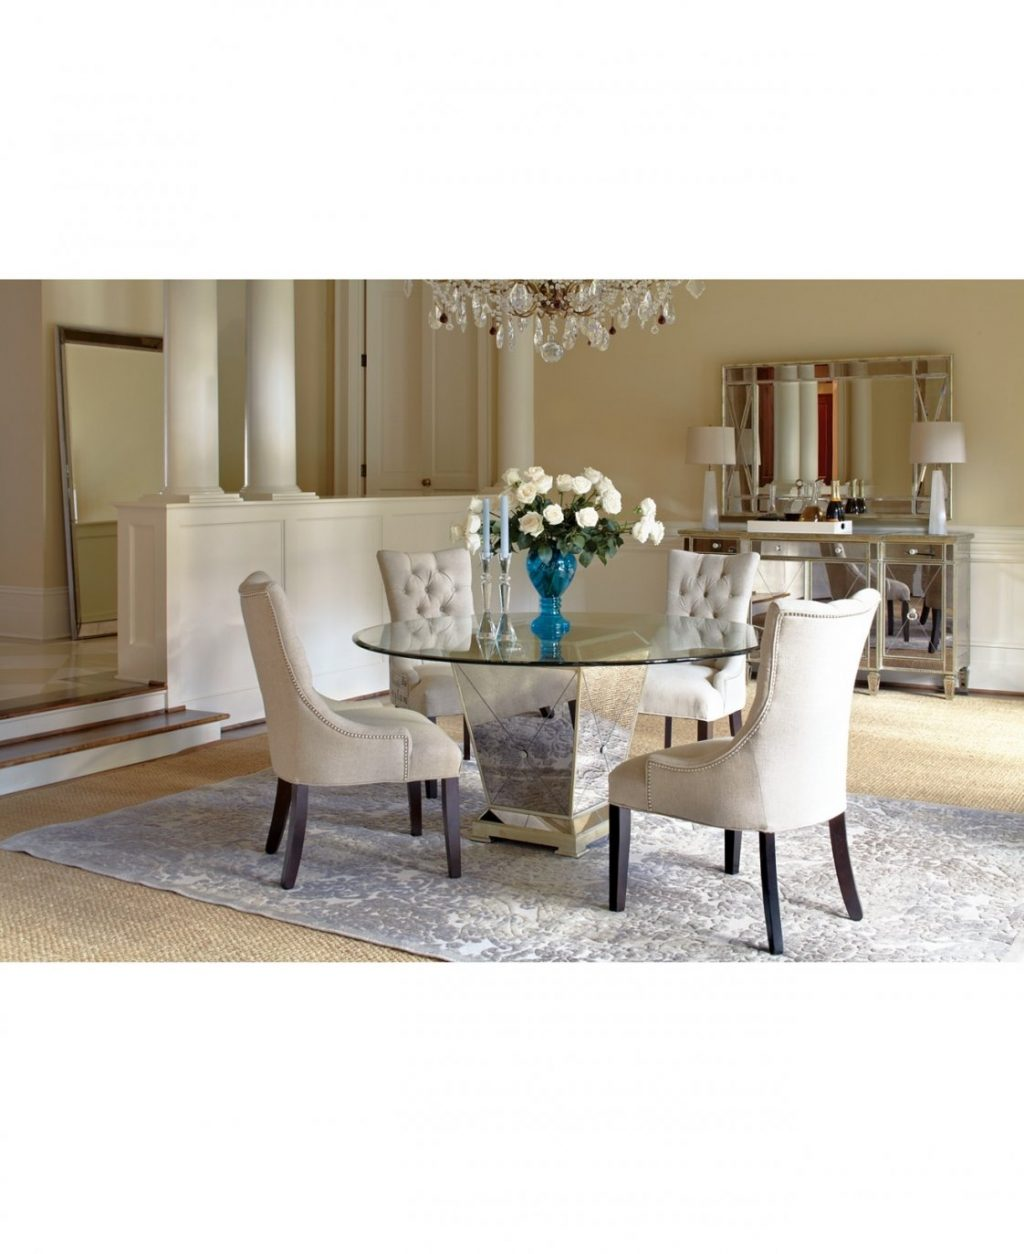 Macys Dining Room Furniture Maggieshopepage Intended For Dining